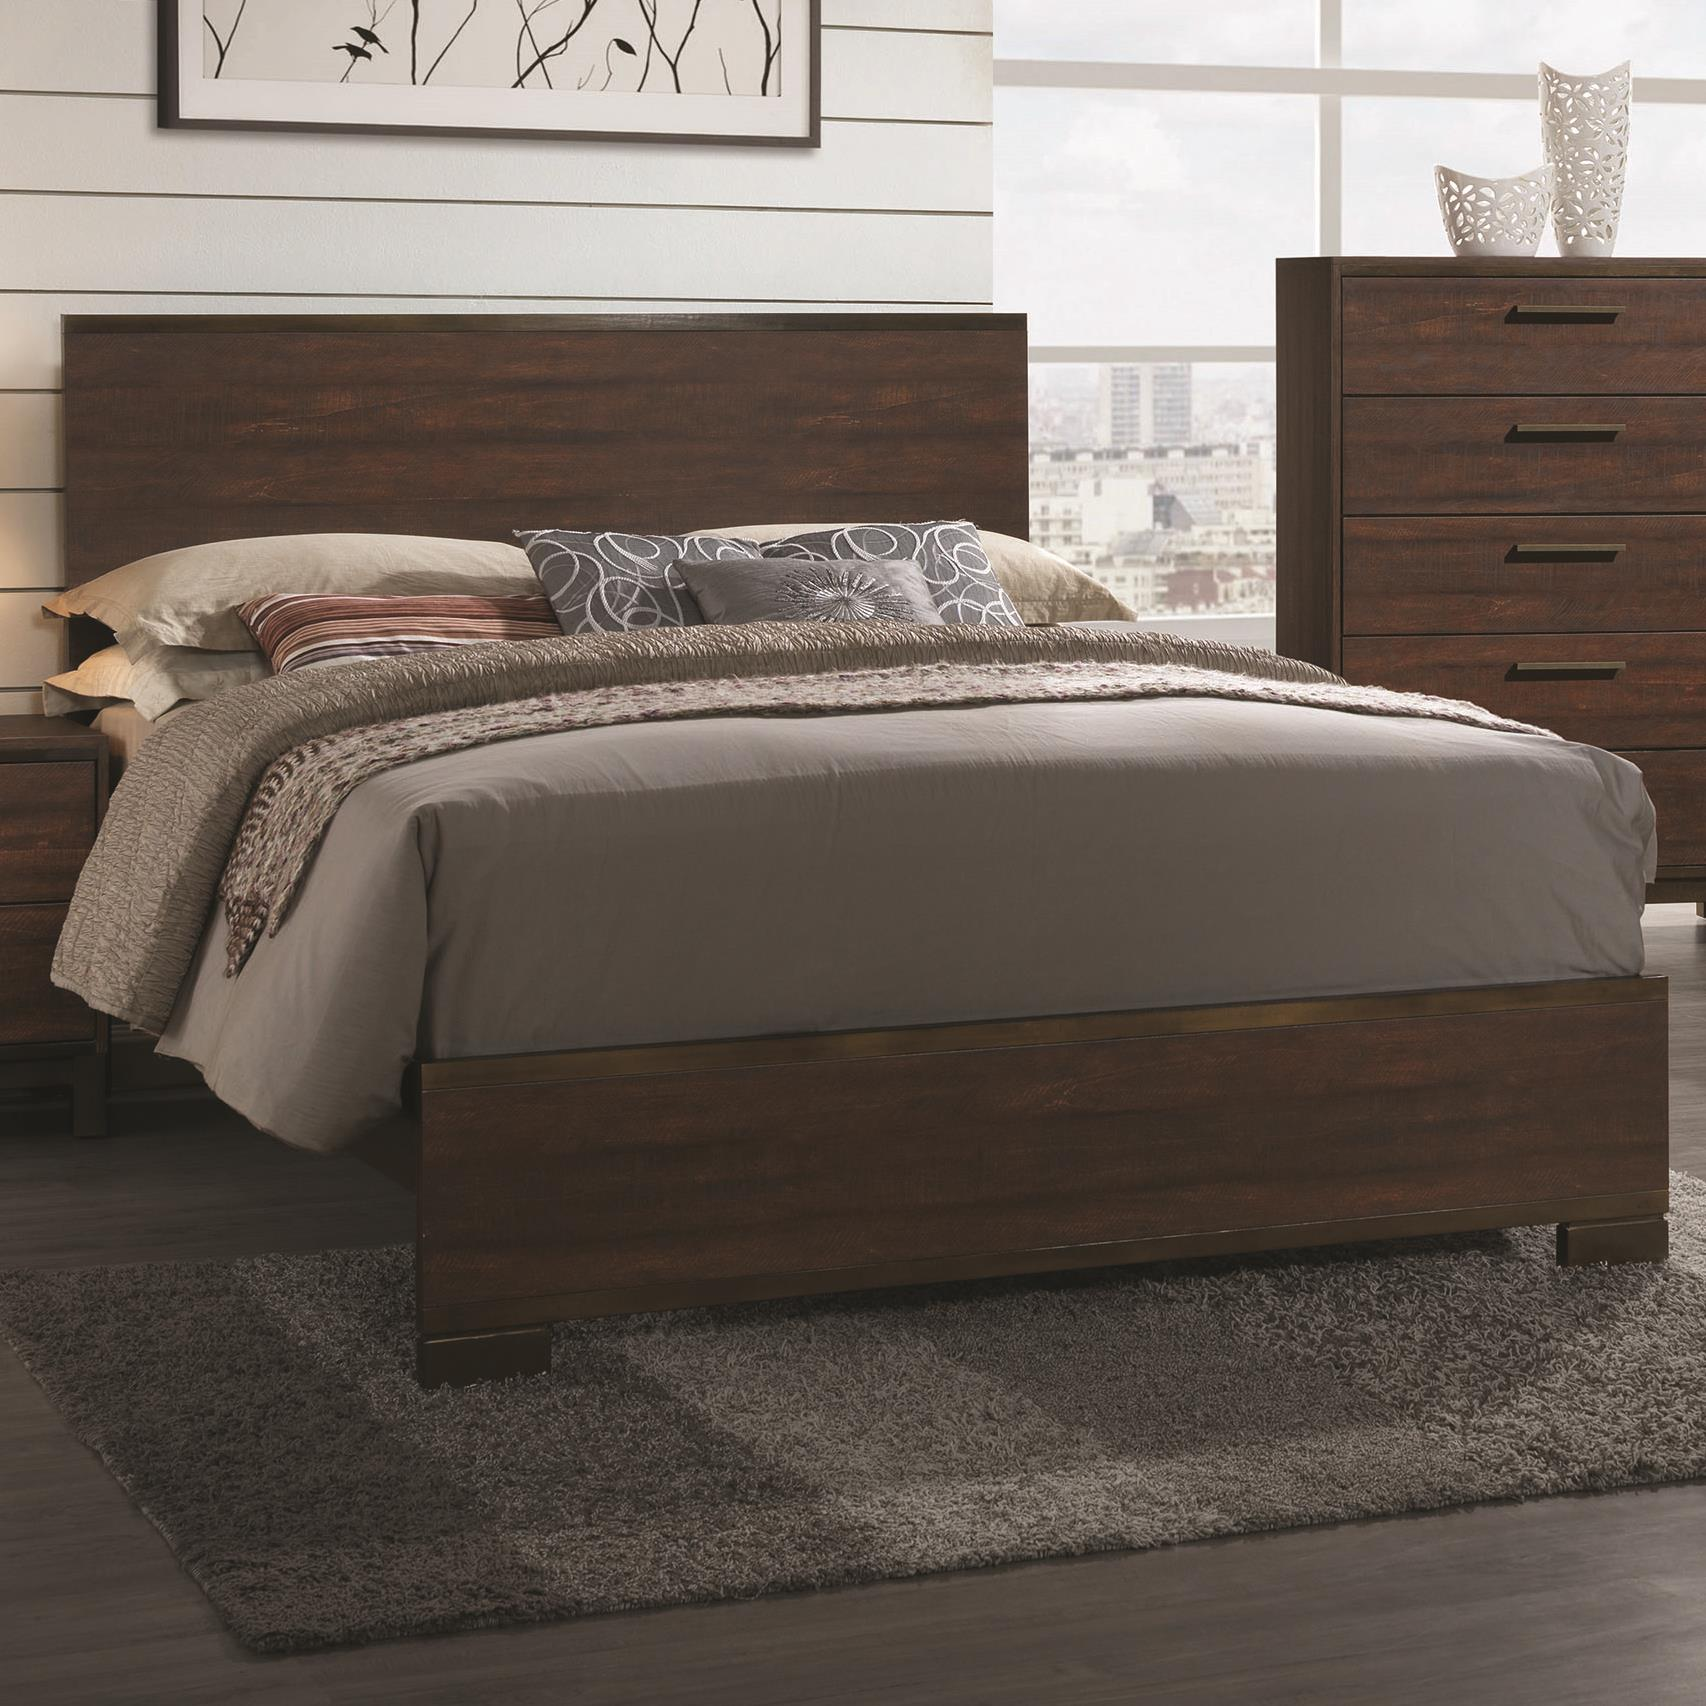 Edmonton Eastern King Bed by Coaster at Northeast Factory Direct